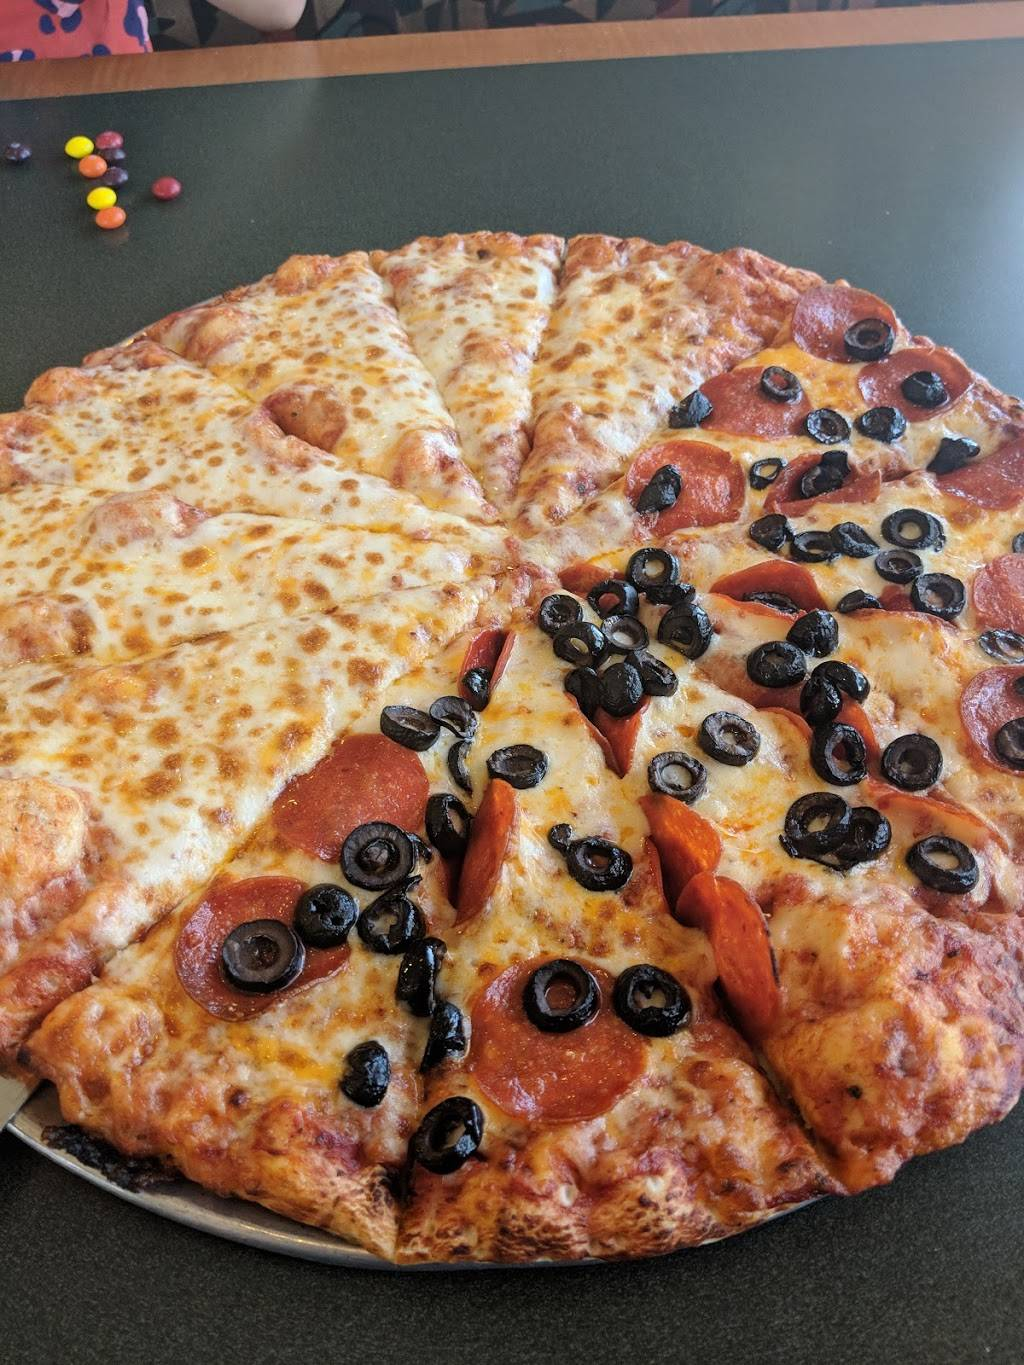 Round Table Pizza Meal Delivery 23254 Lyons Ave Newhall Ca 91321 Usa